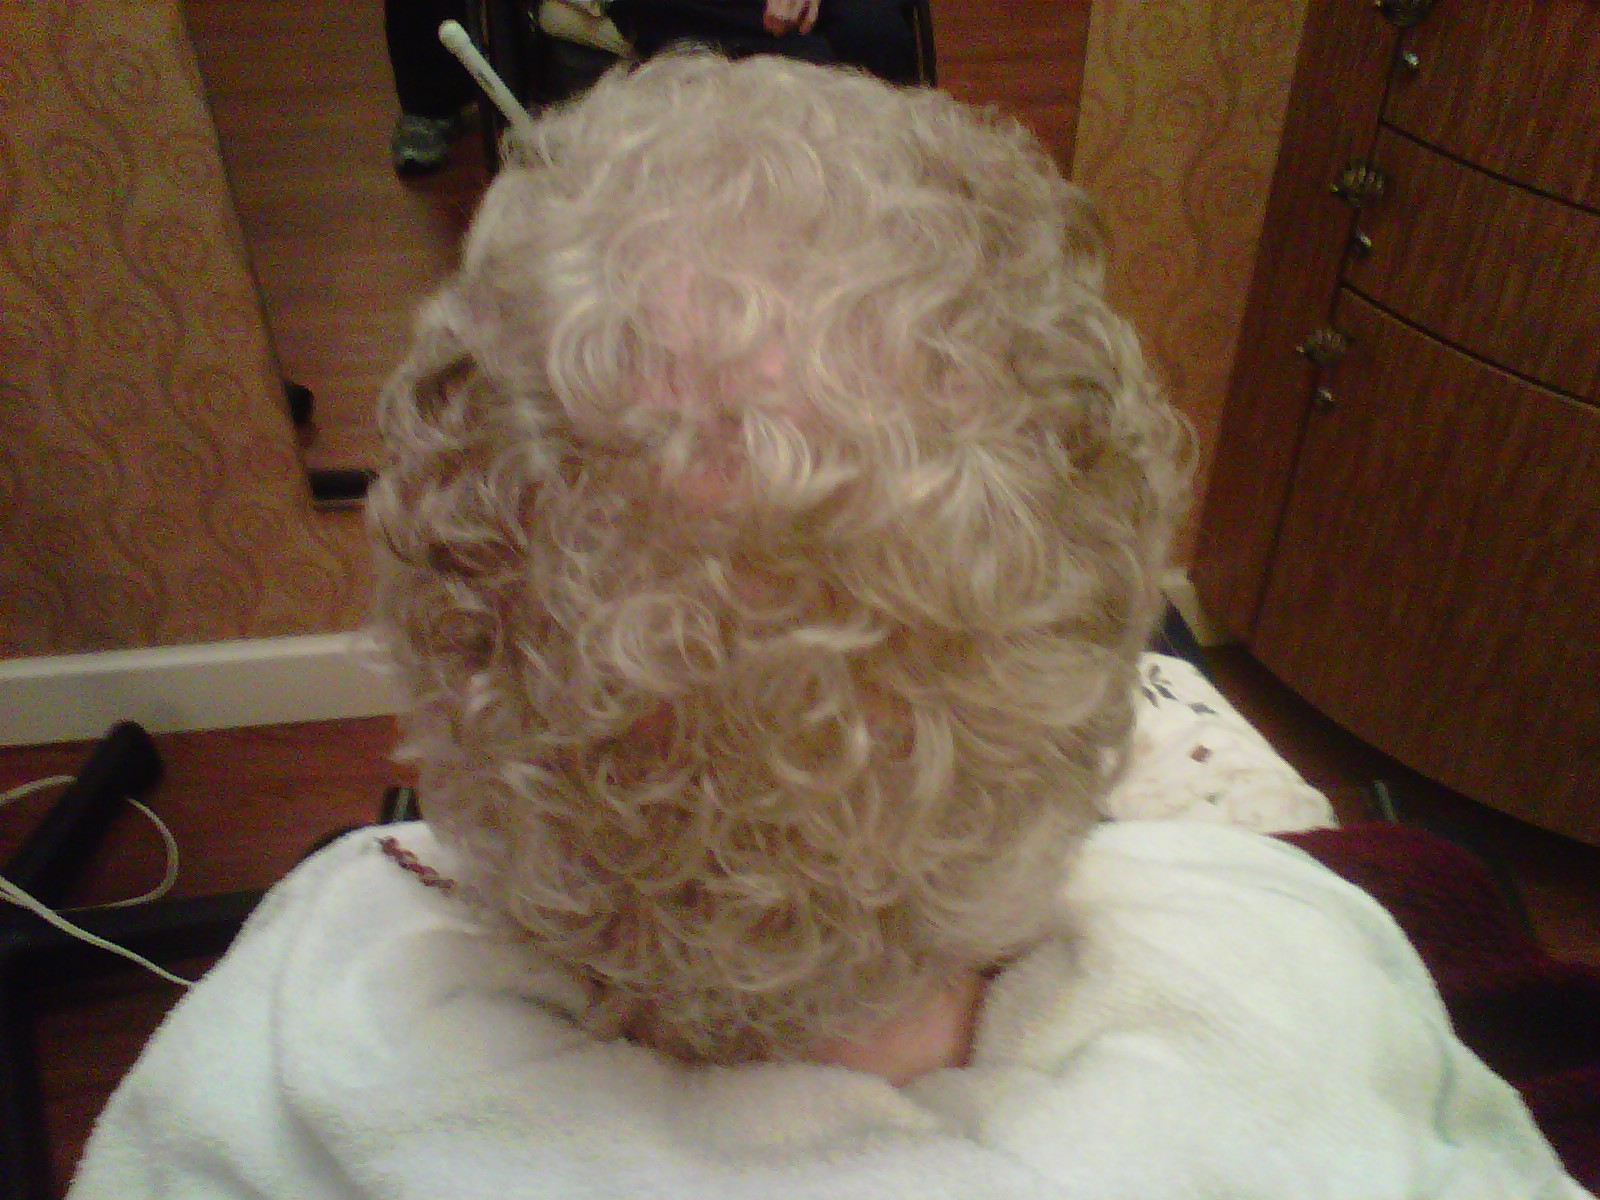 Phenomenalhaircare perm rods from straight to curly i had to complete a curly perm or a permanent wave on an elderly client recently and i realized that the blue perm rods deliver the best curl pattern solutioingenieria Images